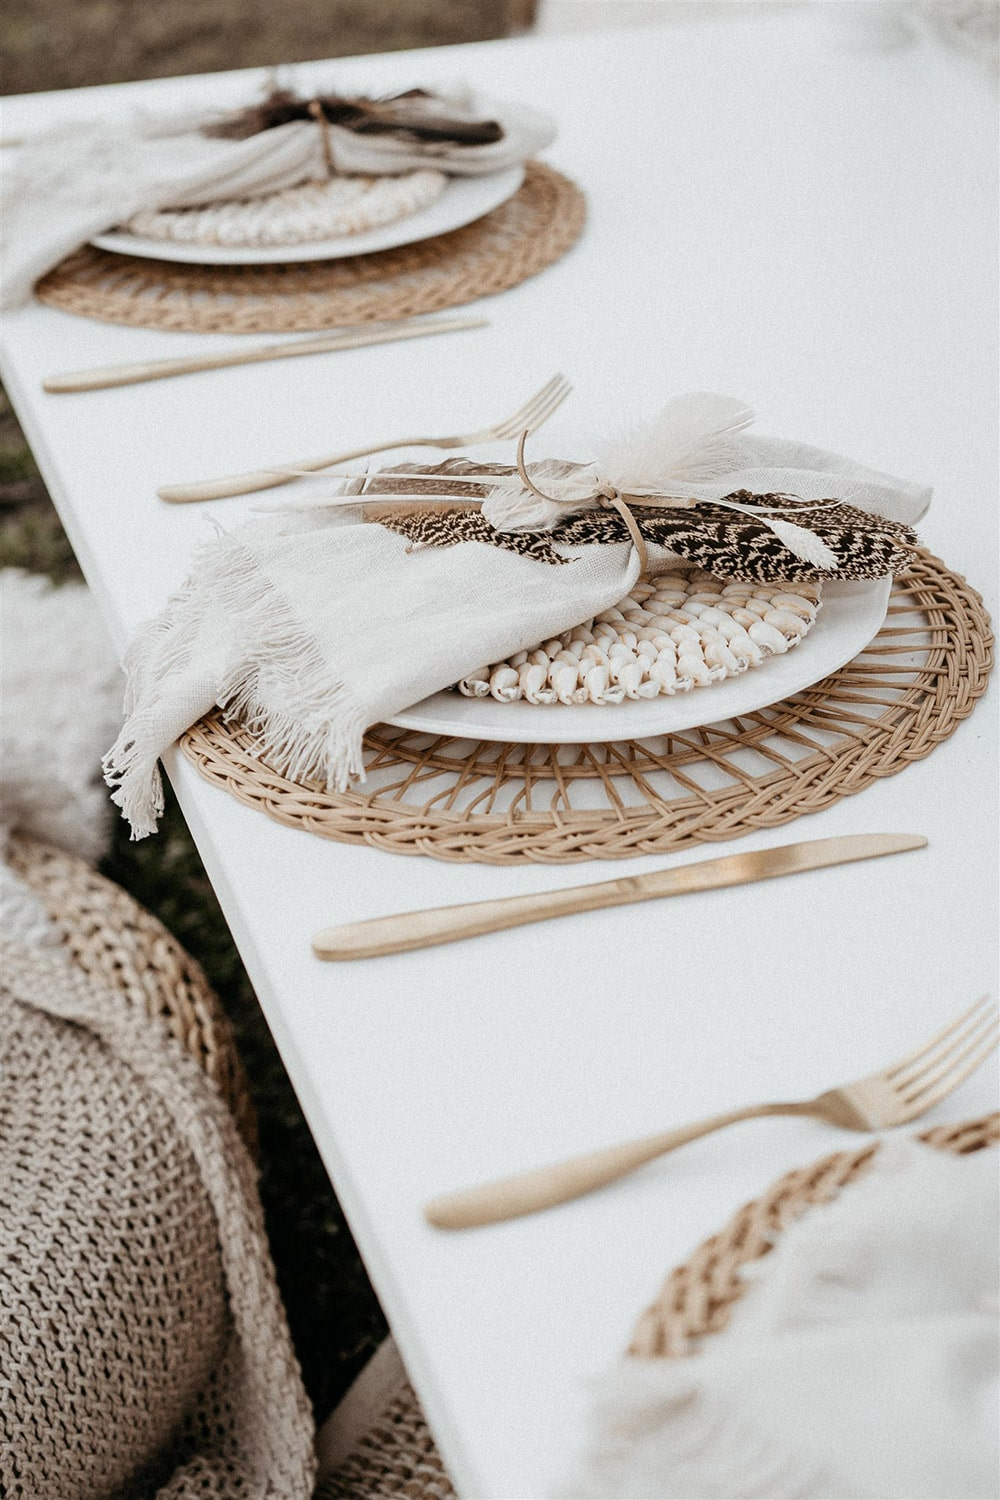 Outdoor Festival Bohemian Wedding Inspiration   The place settings feature gold cutlery, a natural woven placemat topped with white plateware and neutral napkins tied with cord and feathers.   Photography: Shae Estella Photo